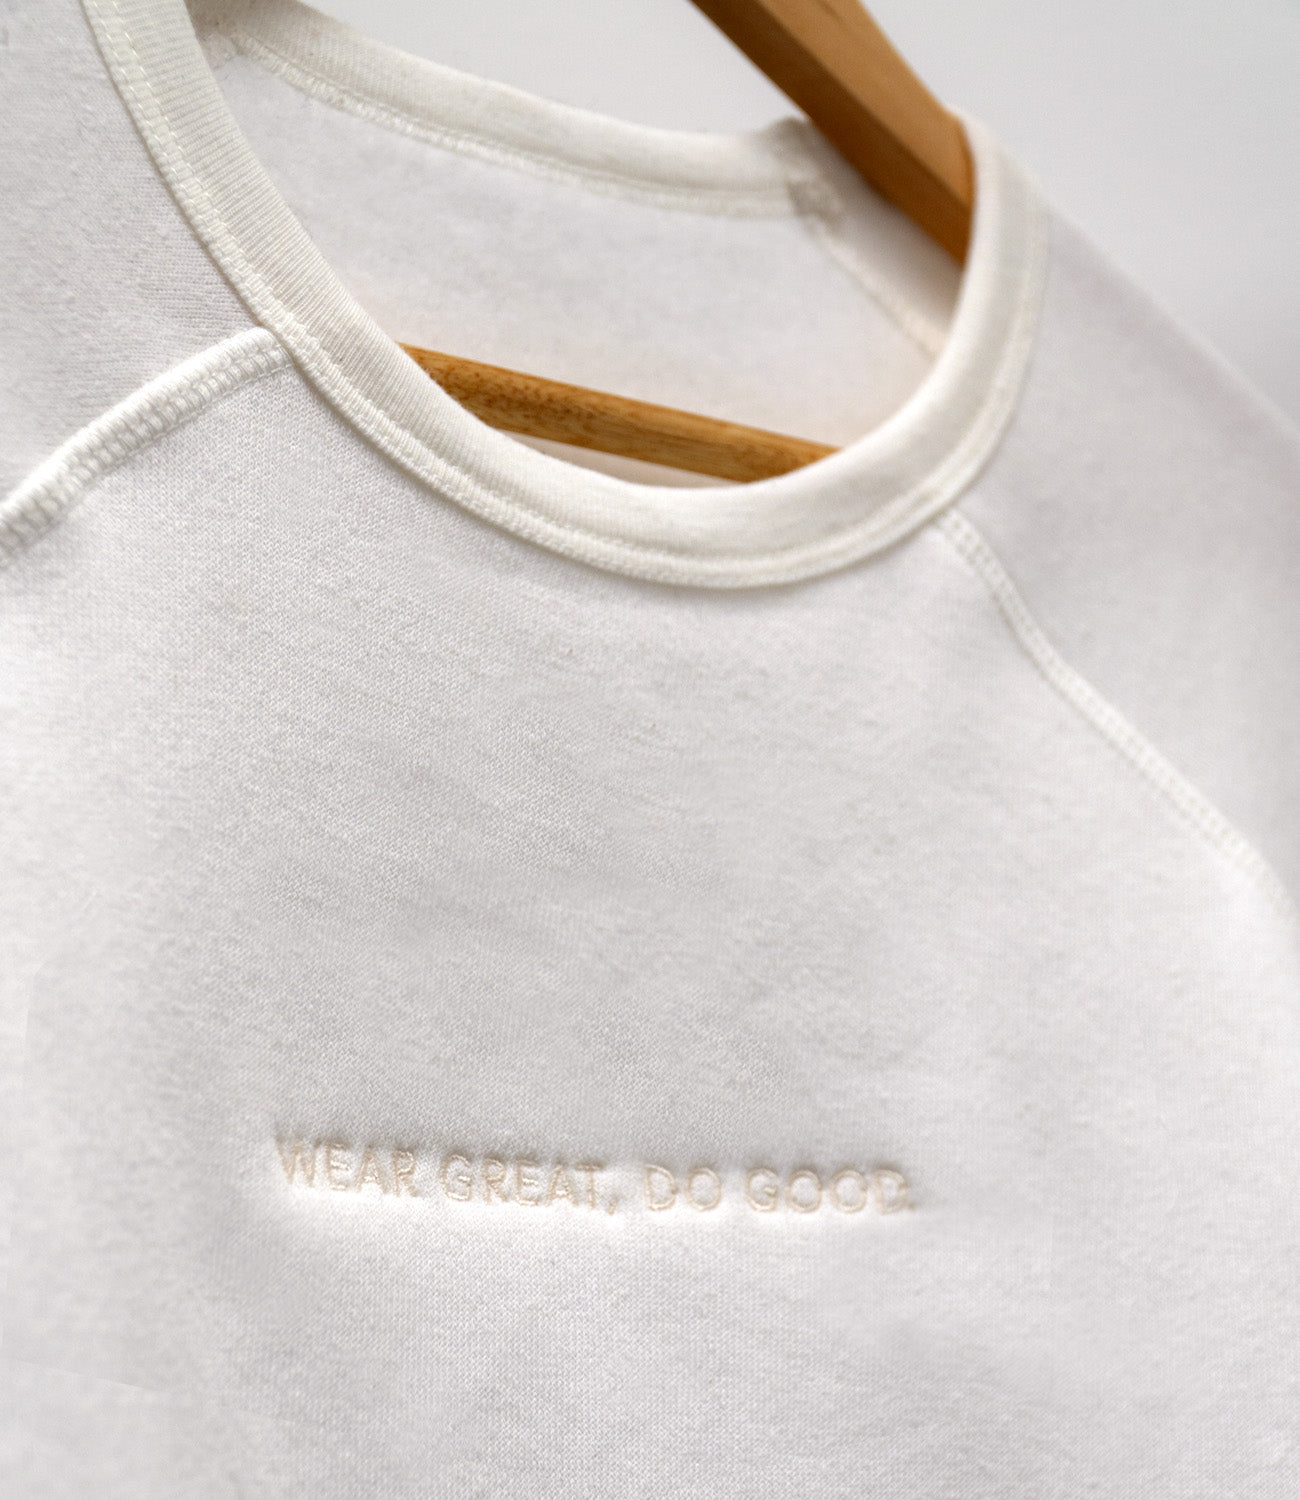 Wear Great, Do Good - Fleece Raglan